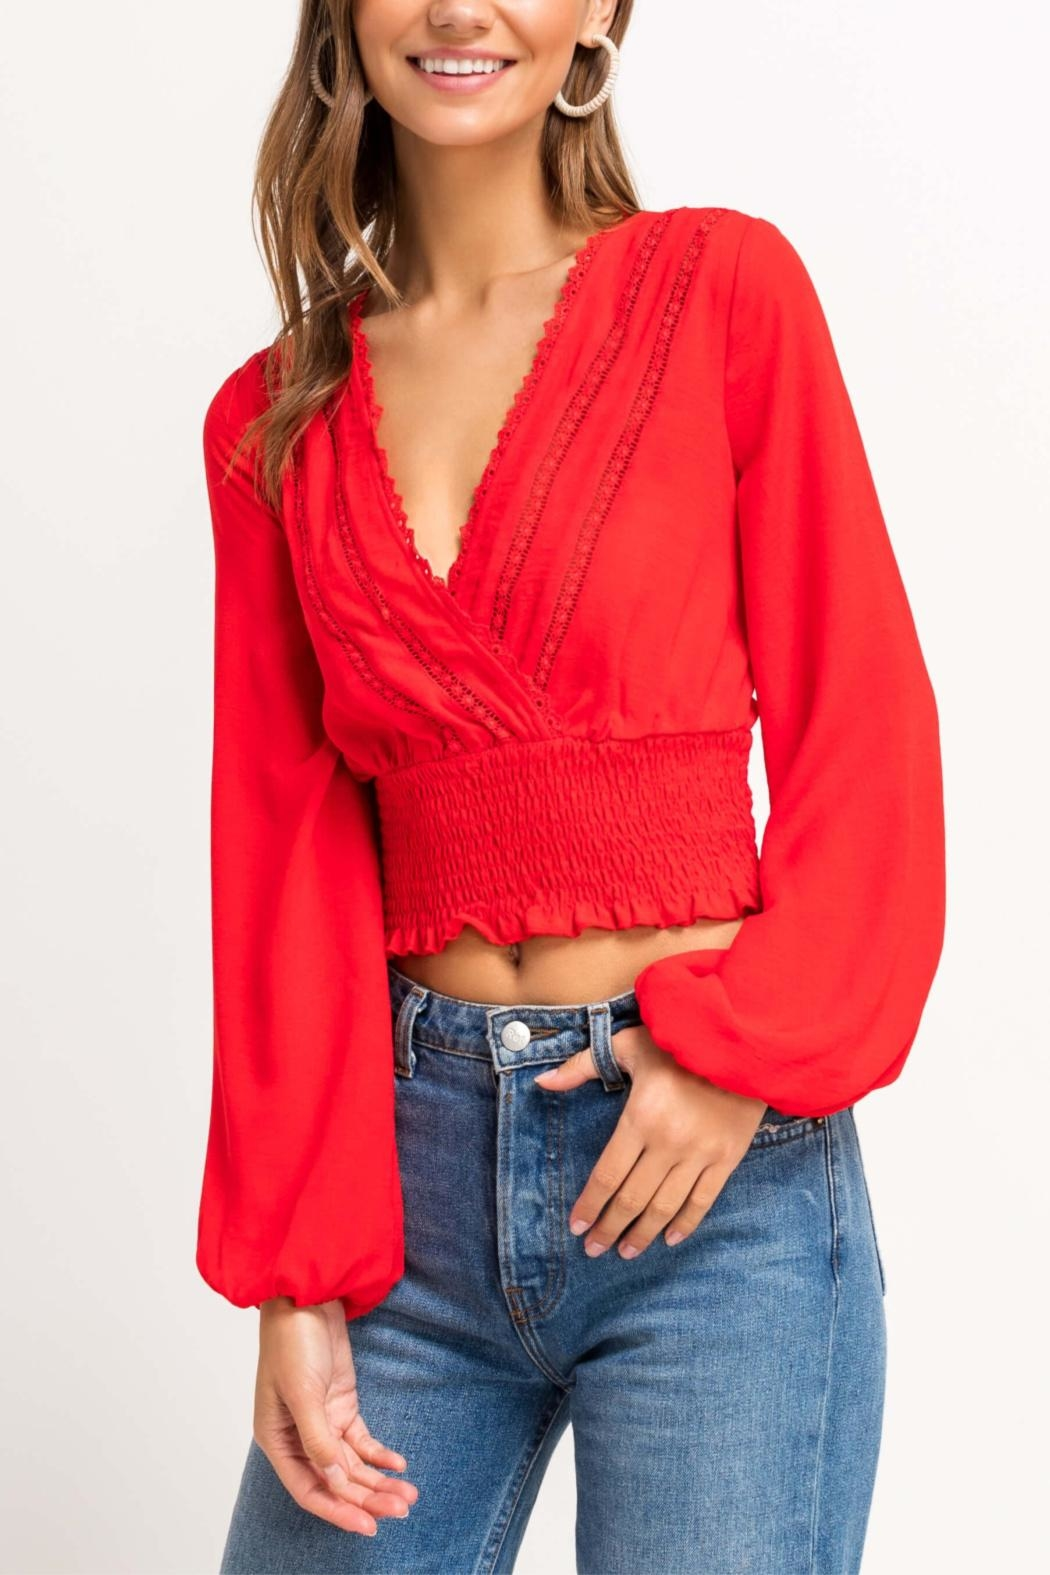 Lush Cherry Pop Crop Top - Front Cropped Image